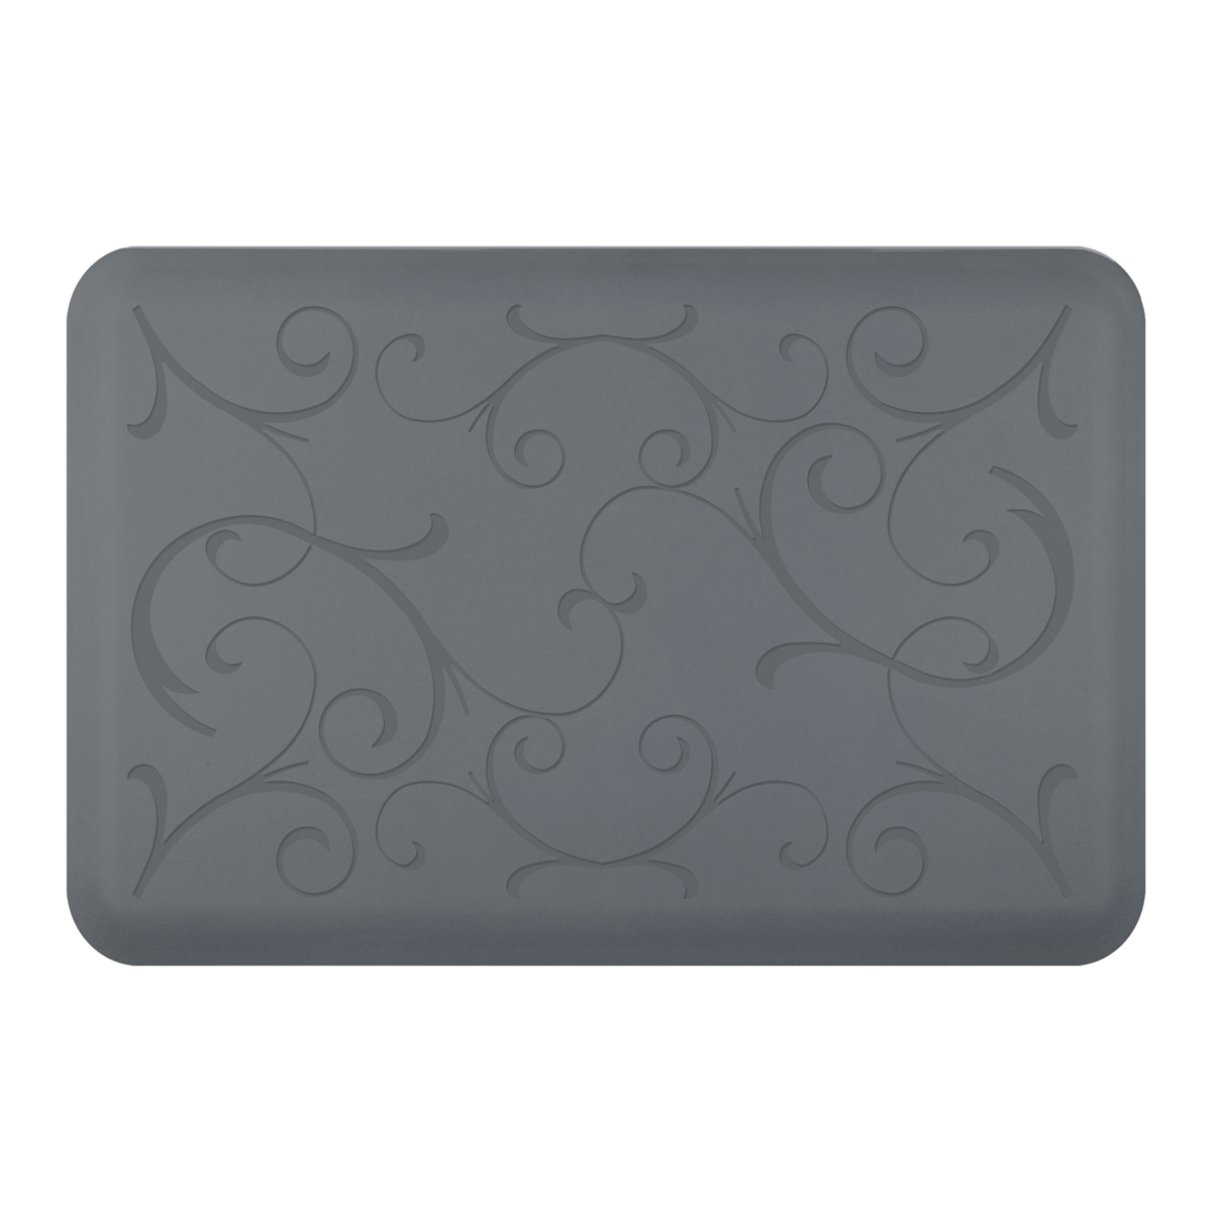 WellnessMats Bella Motif Anti-Fatigue Mat, Gray, 36 Inch by 24 Inch by WellnessMats